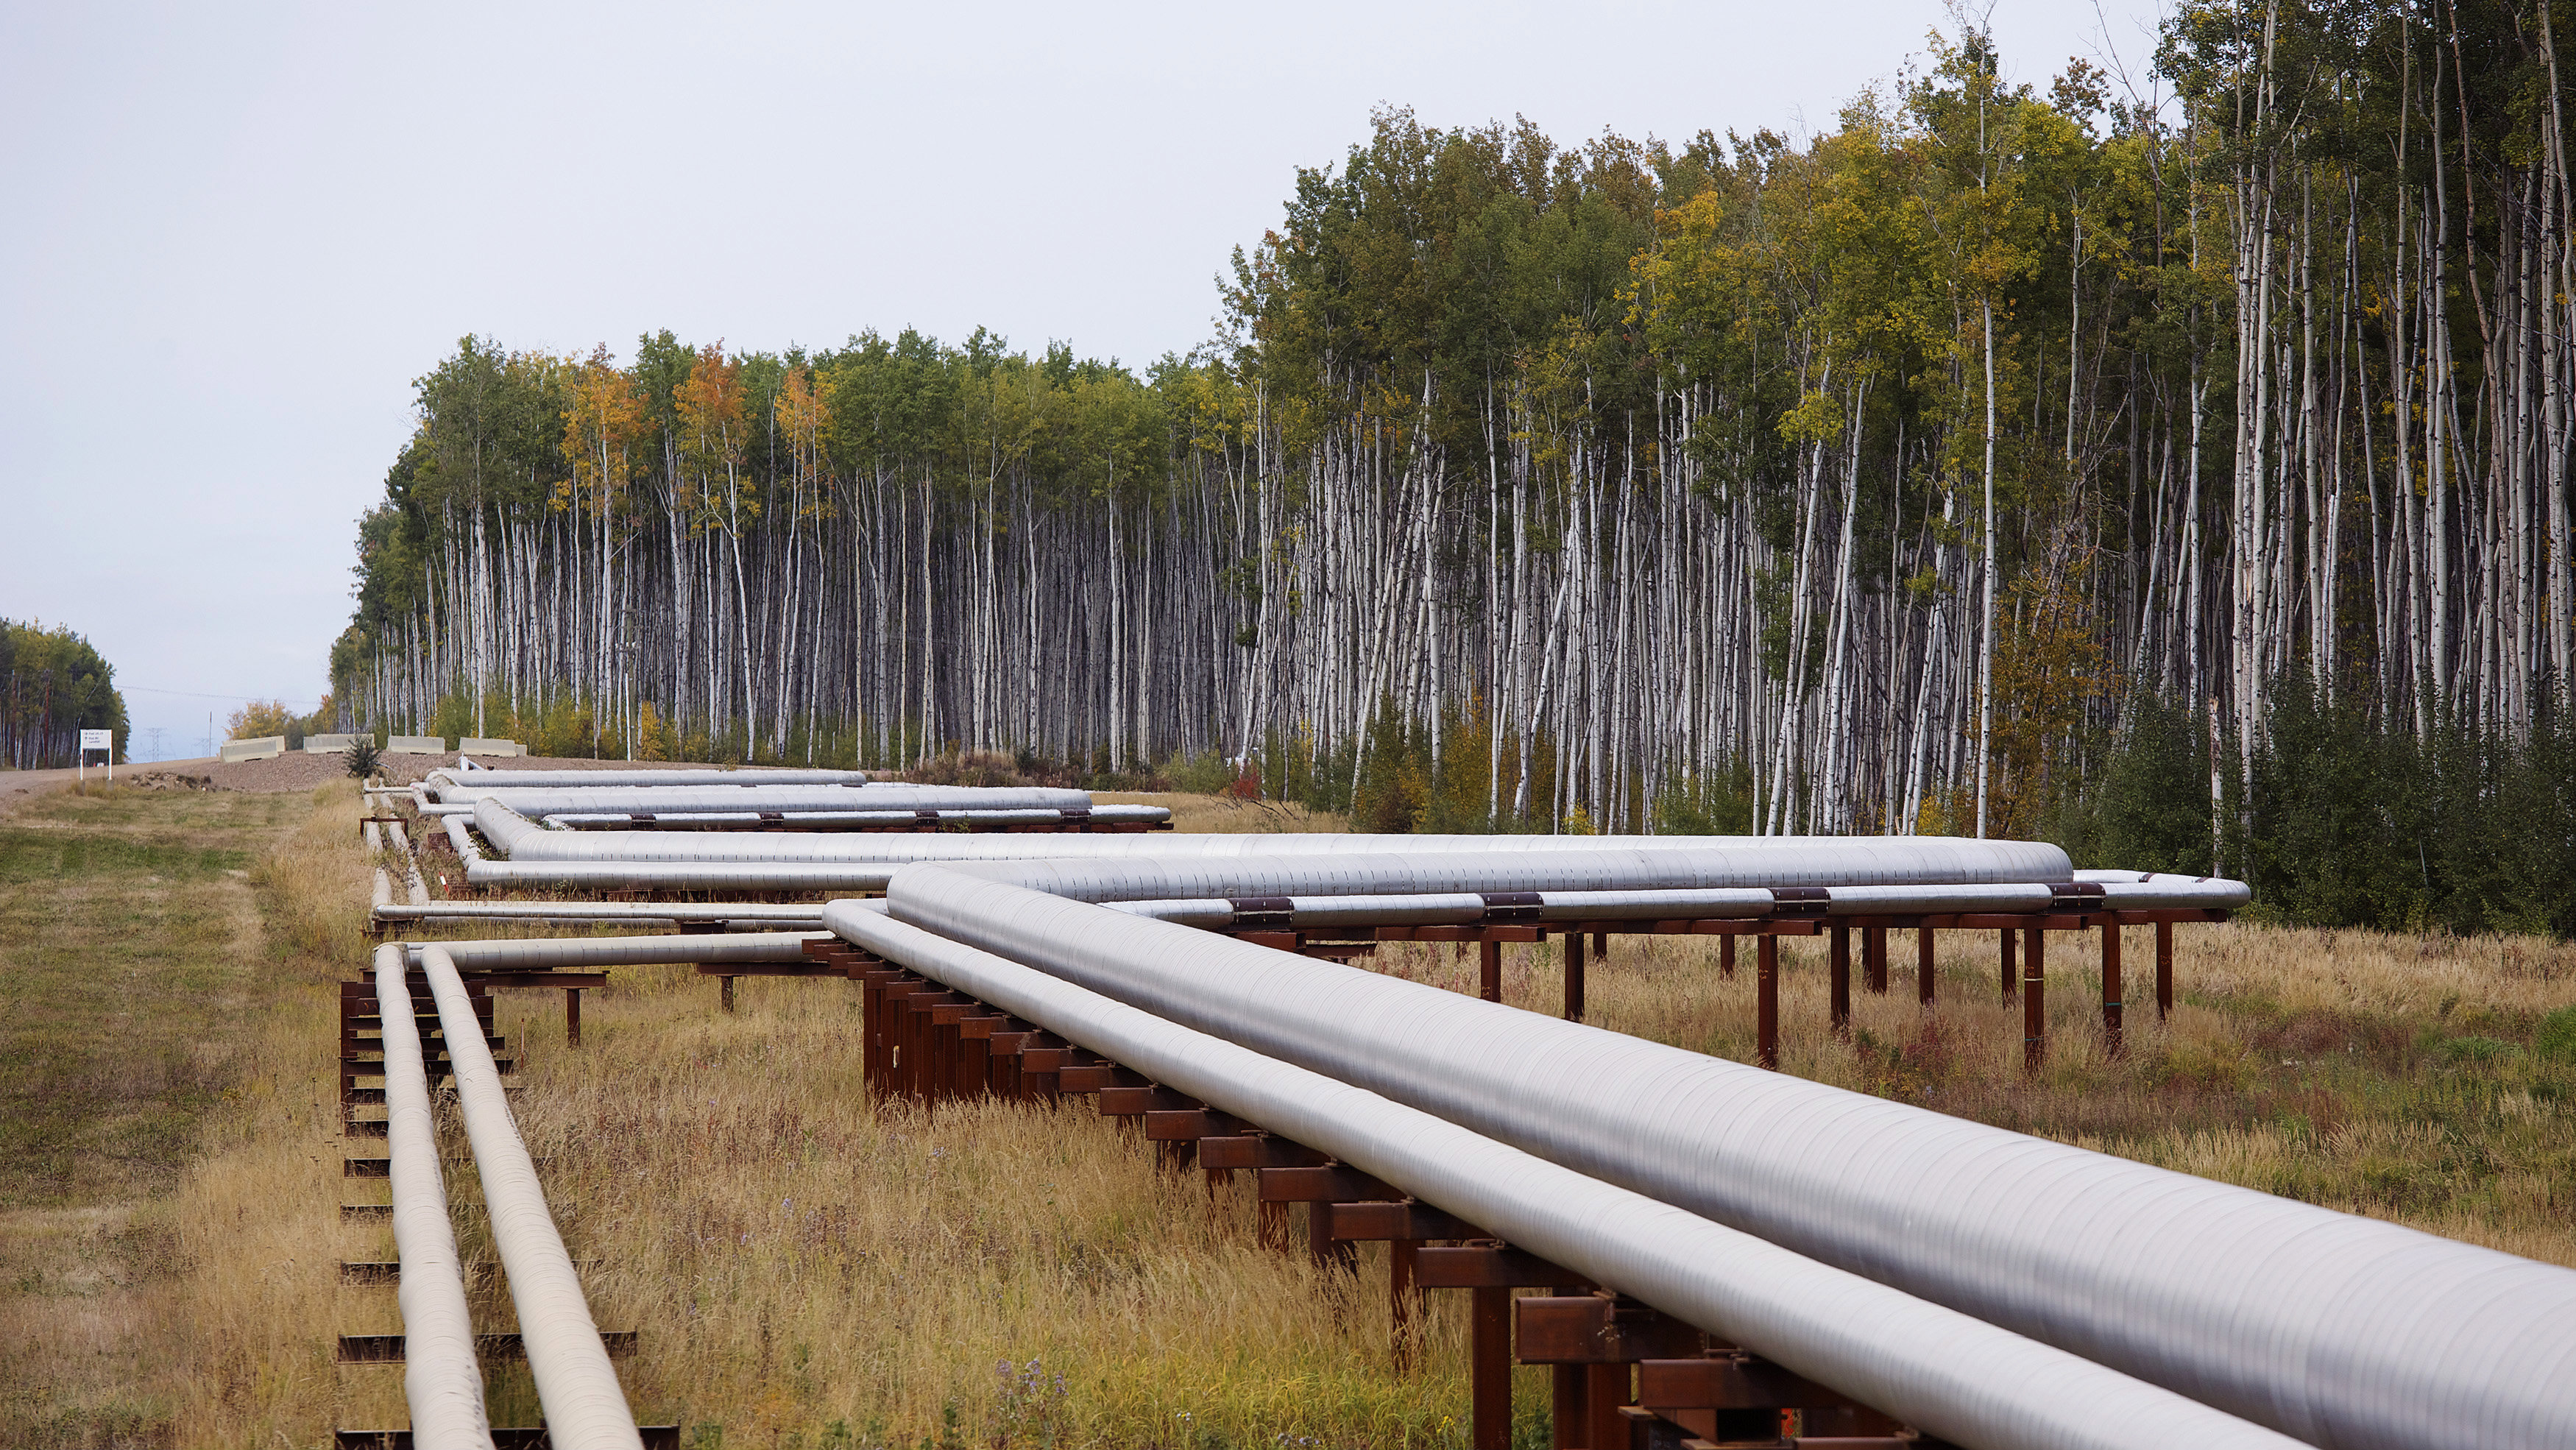 Pipelines run at the McKay River Suncor oil sands in-situ operations near Fort McMurray, Alberta, September 17, 2014. In 1967 Suncor helped pioneer the commercial development of Canada's oil sands, one of the largest petroleum resource basins in the world. Picture taken September 17, 2014.